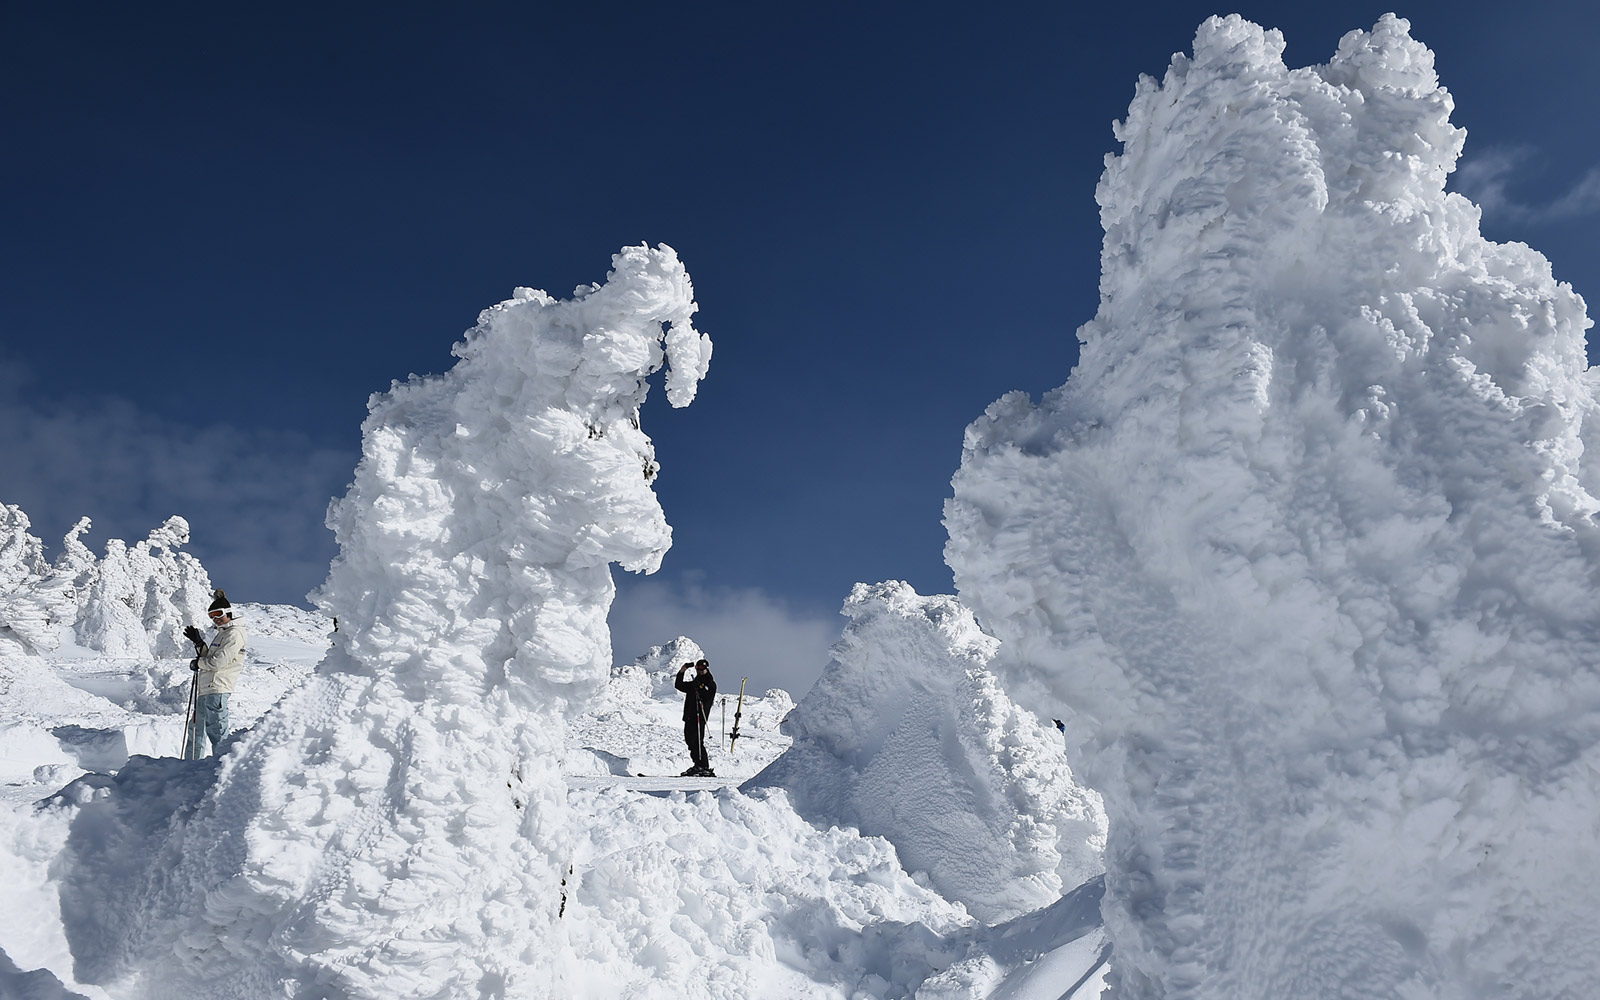 Snow monsters at Zao Ski Resort in Japan